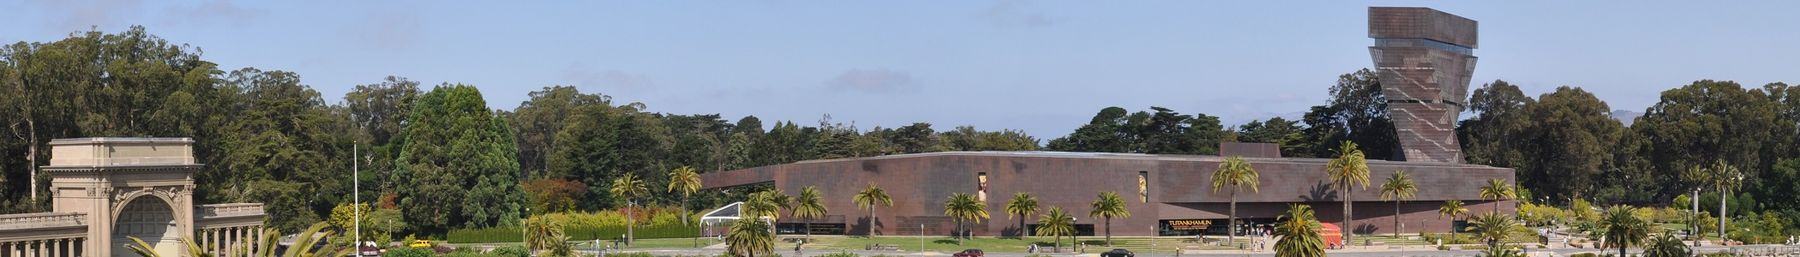 De Young Museum, Golden Gate Park